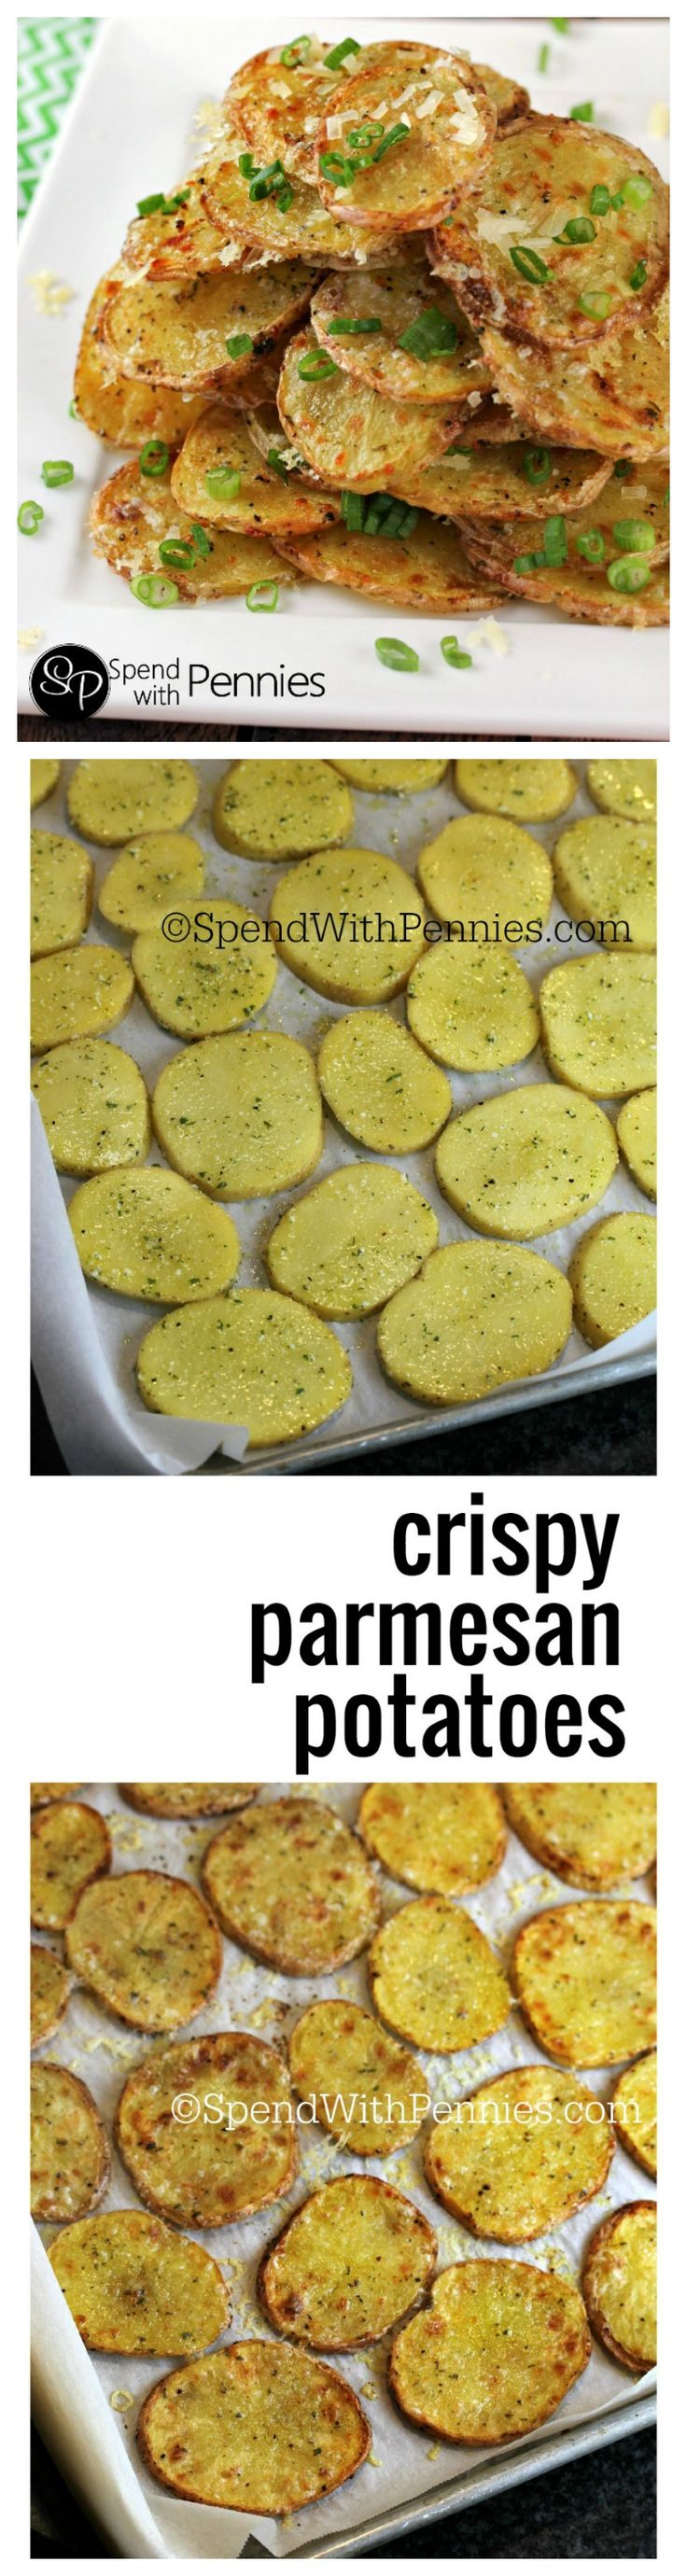 Crispy Parmesan Potatoes! These easy delicious potatoes make the perfect side or snack! #TheBeautyAddict